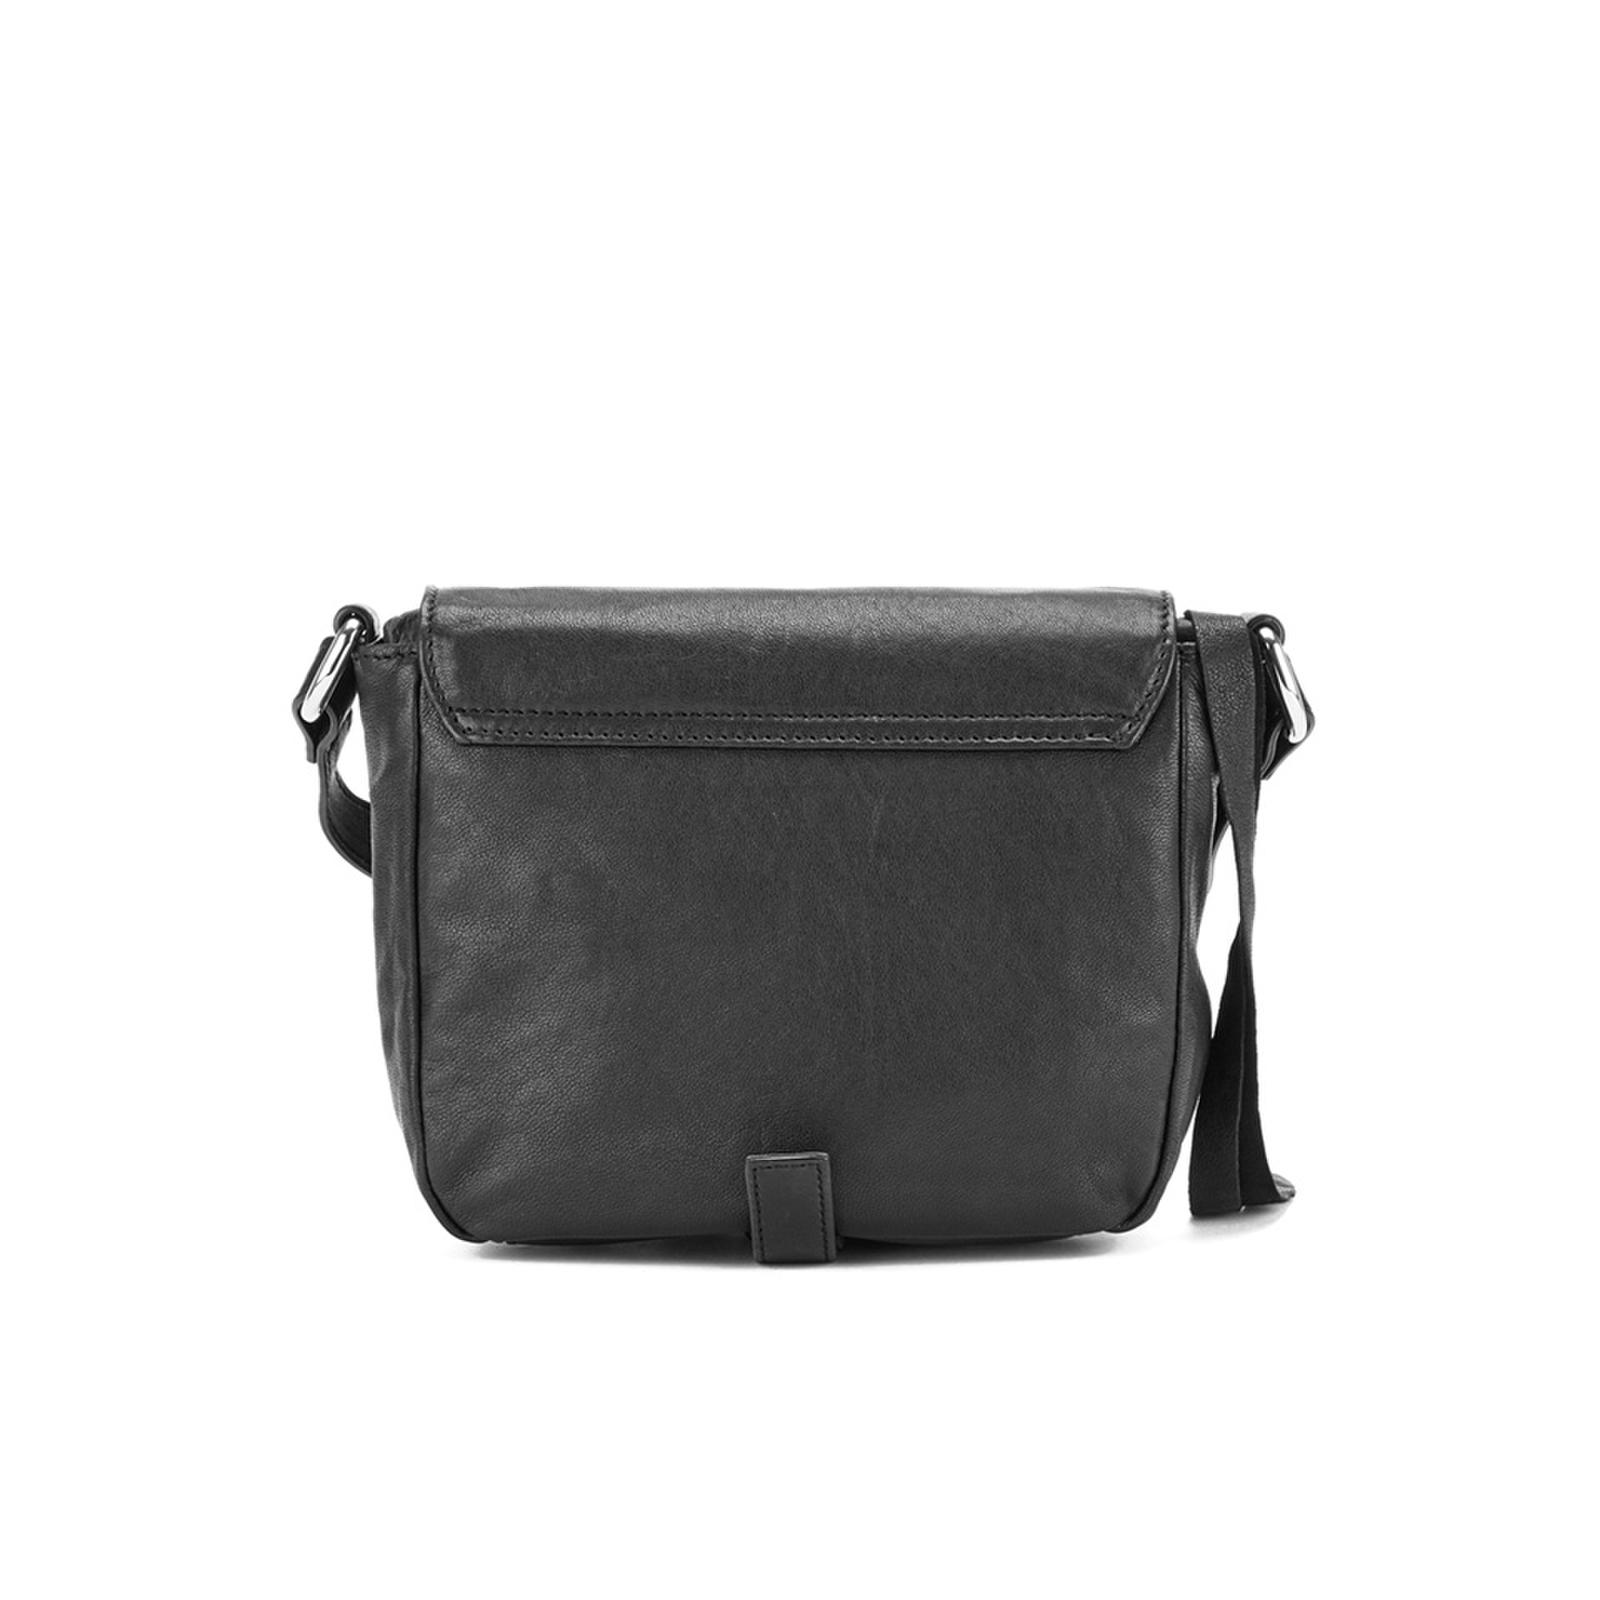 McQ Leather Loveless Mini Cross Body Bag in Black